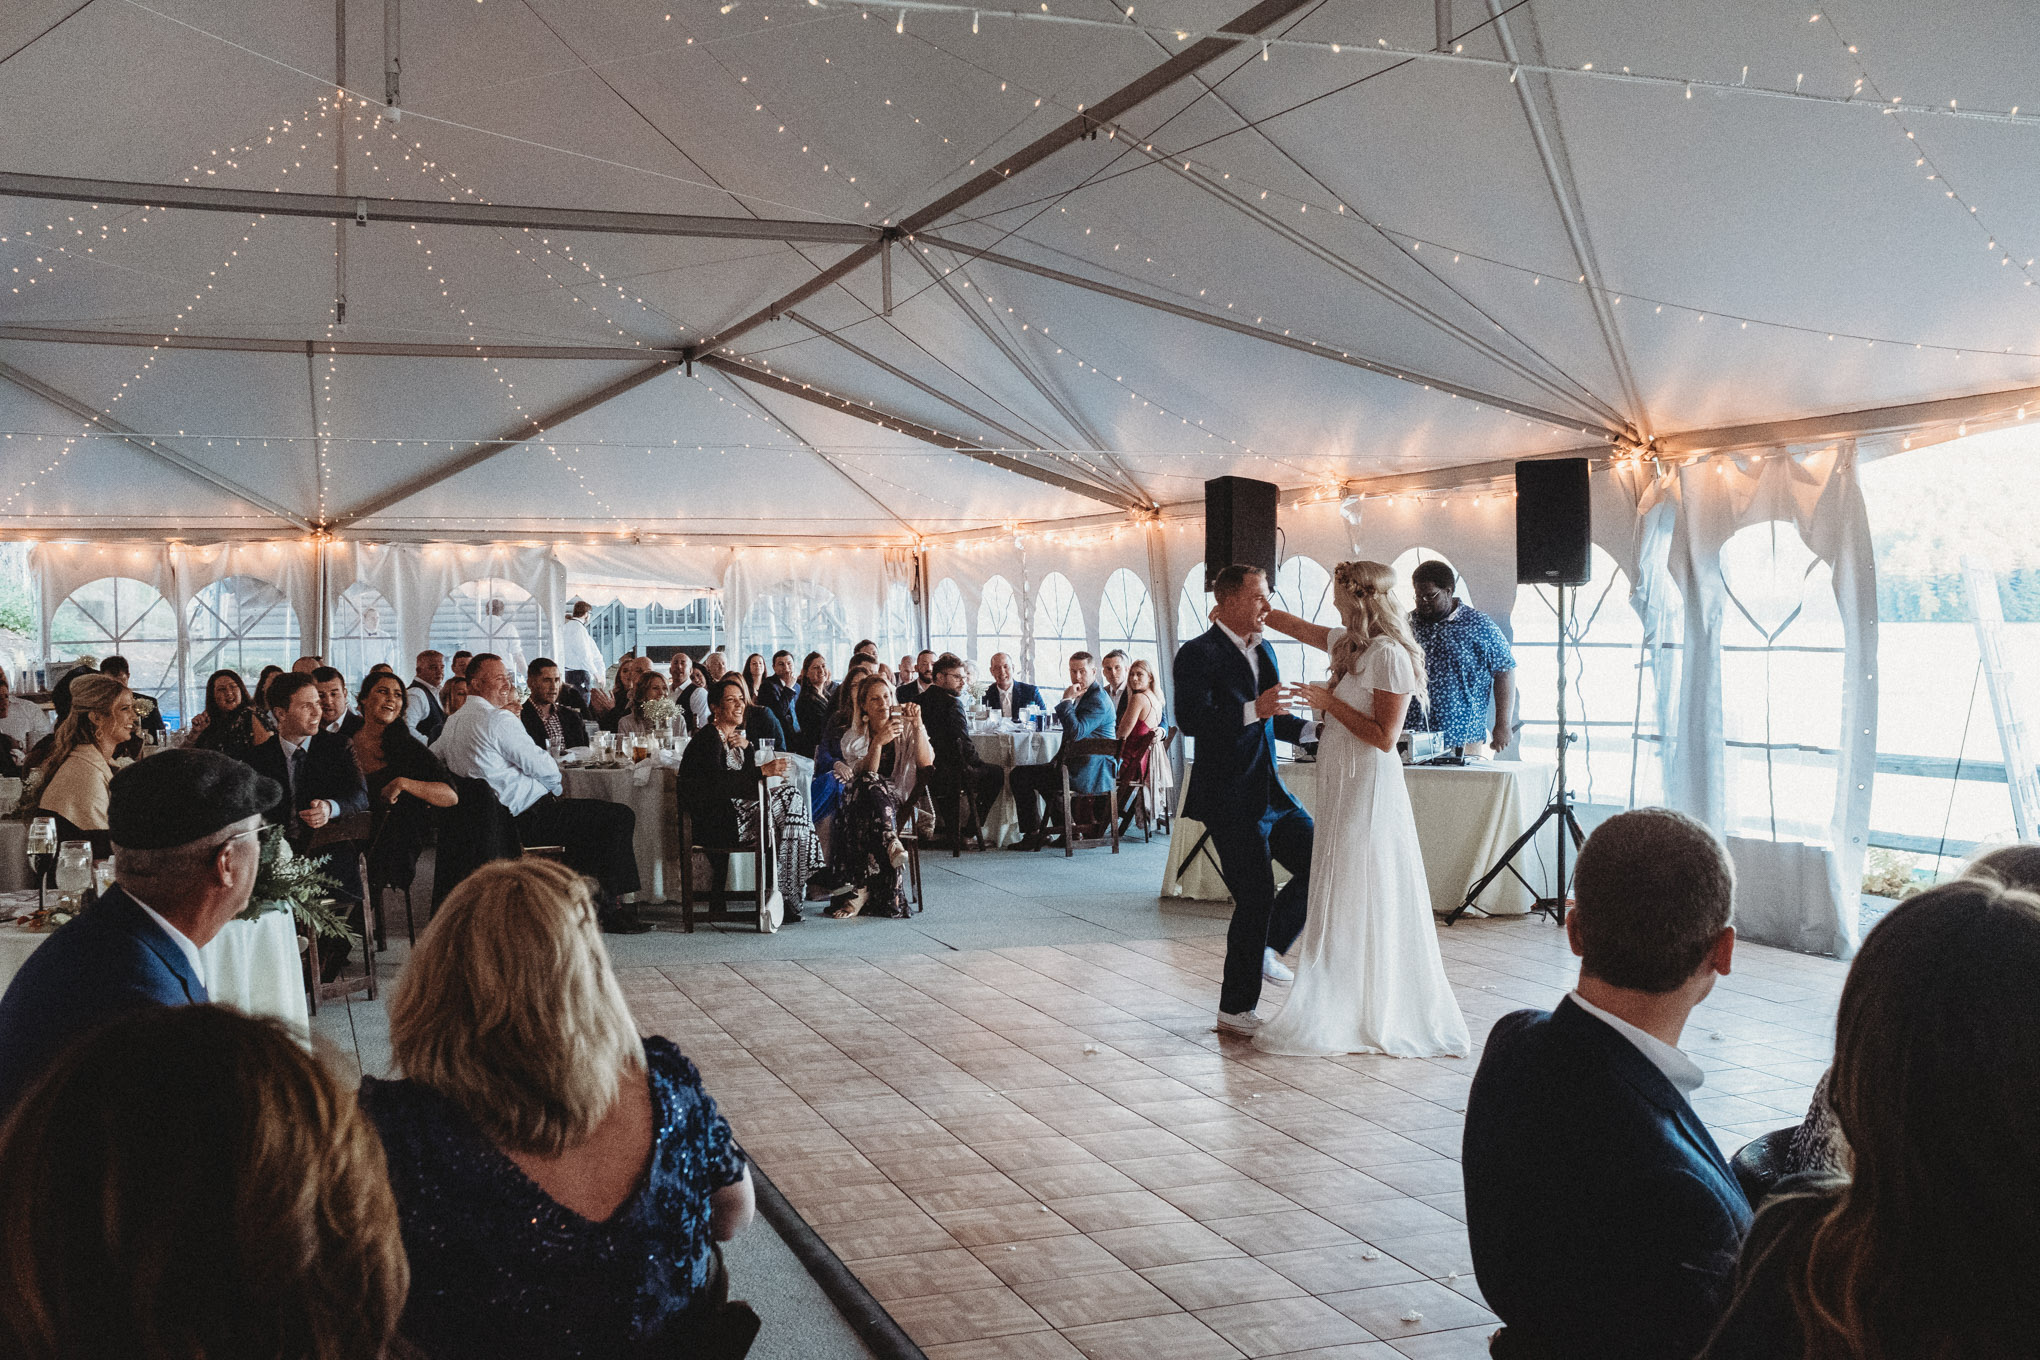 Bride and groom, Jodi Hogan and Eaamon Shaughnesy dance their first dance to country music on  a small dance floor inside of a white event tent.